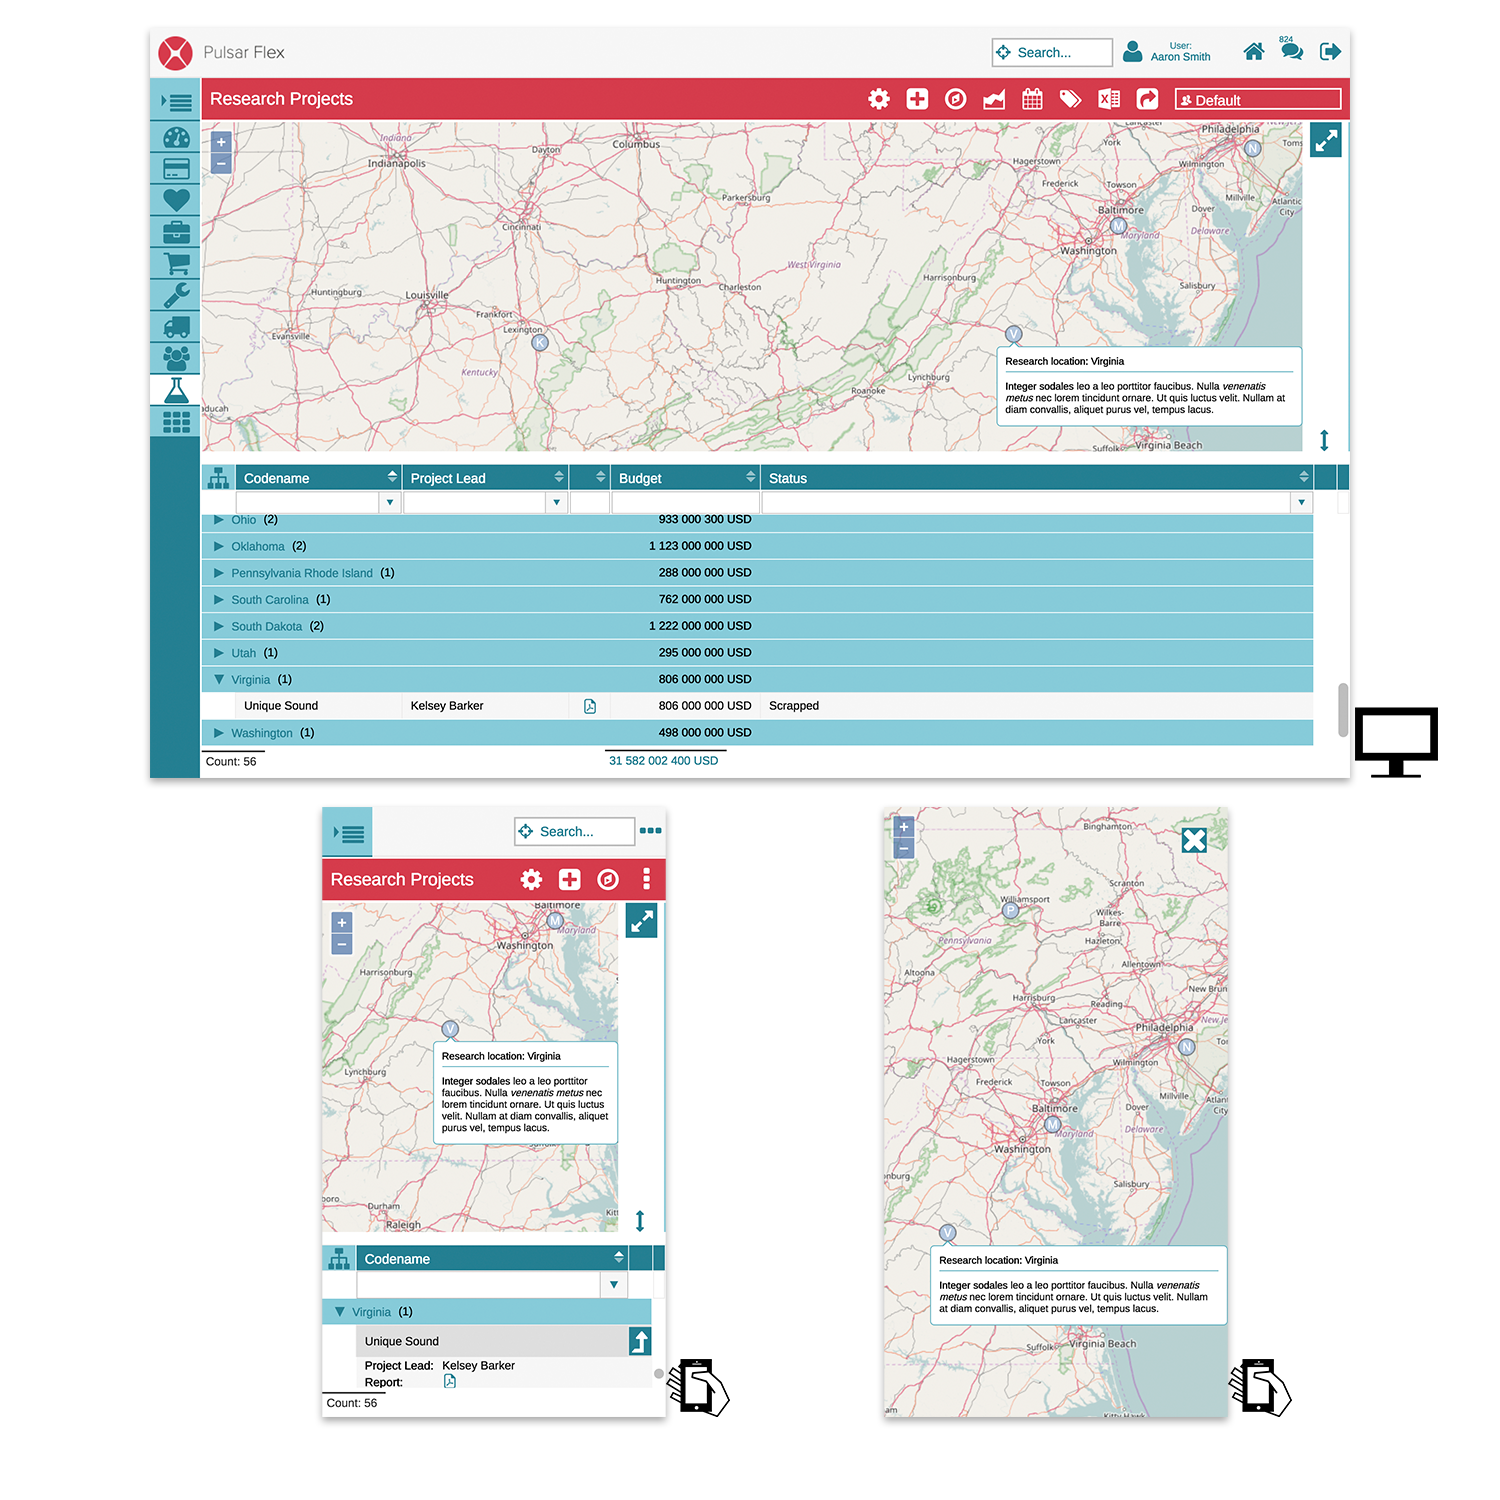 GIS plugin activated on desktop and mobile, plus a full screen view on mobile.